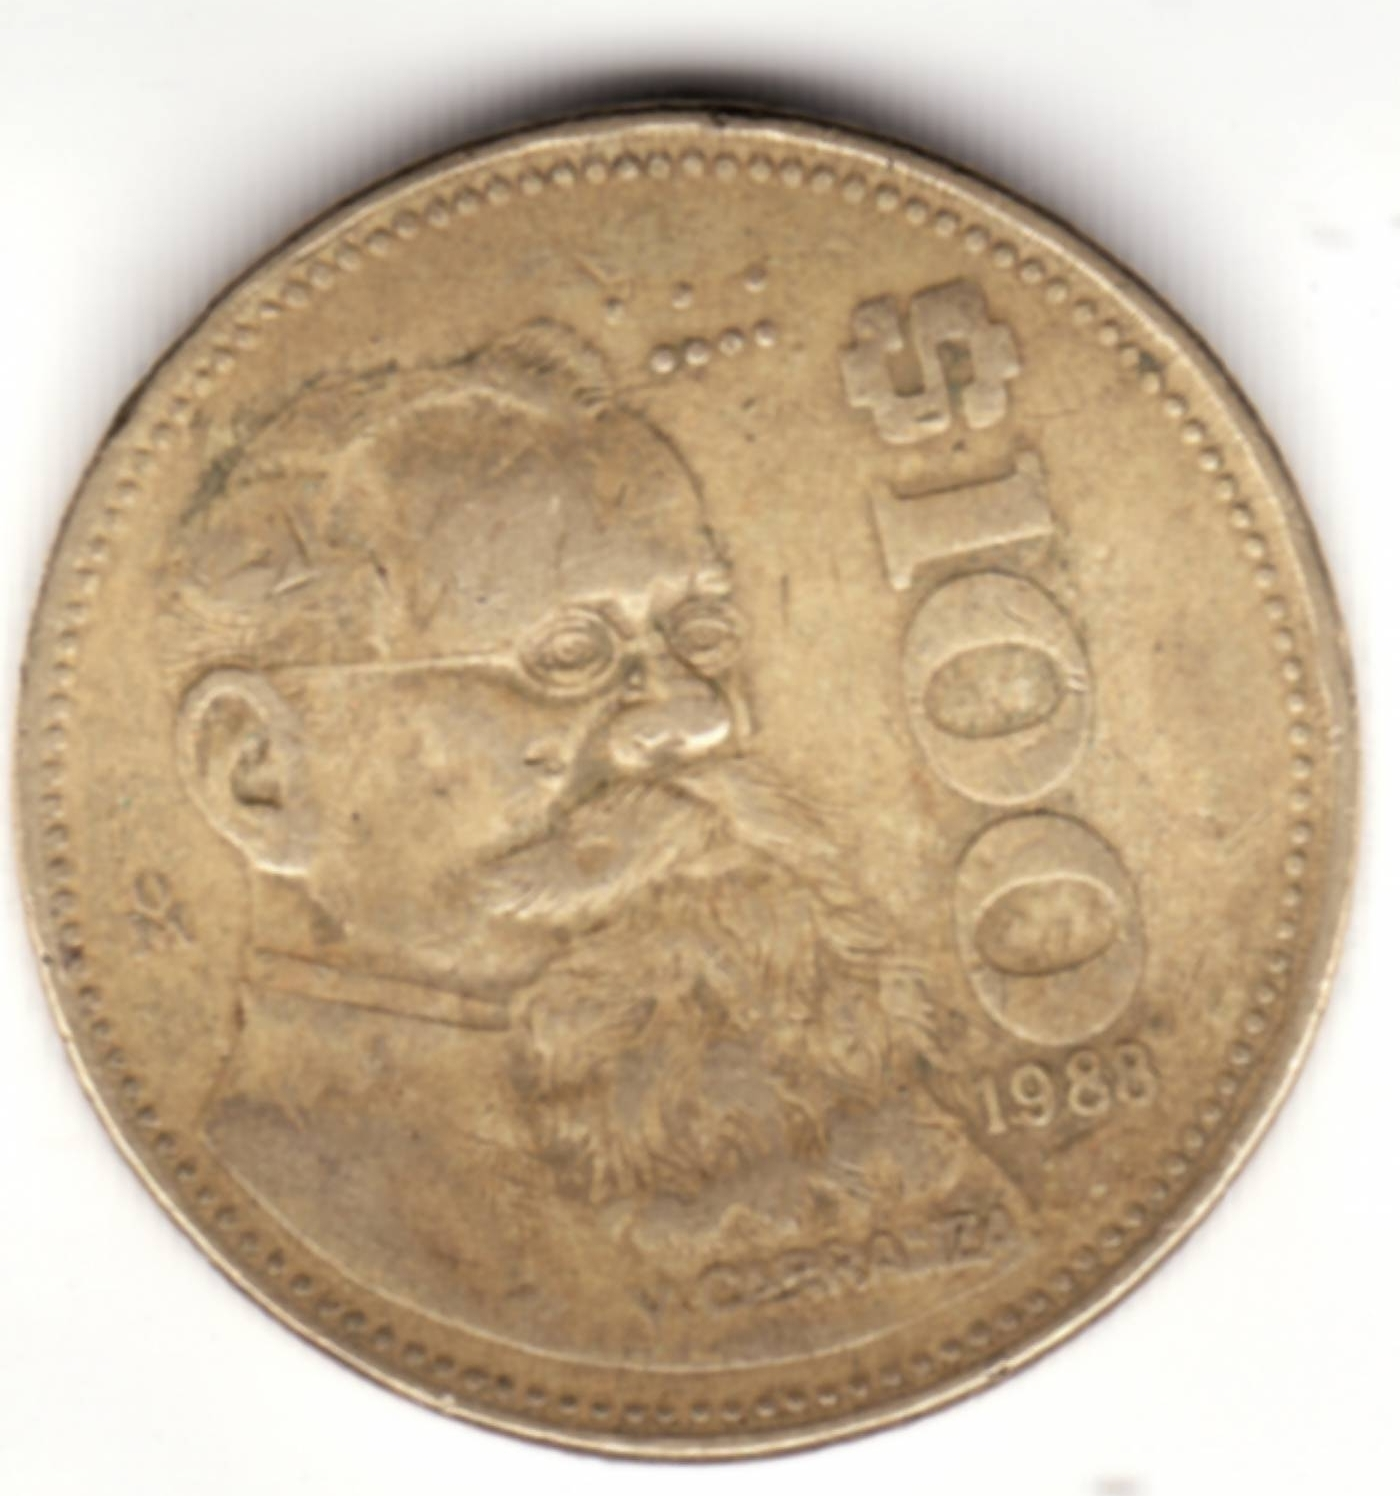 100 Pesos 1988, United Mexican States (1981-1990) - Mexico